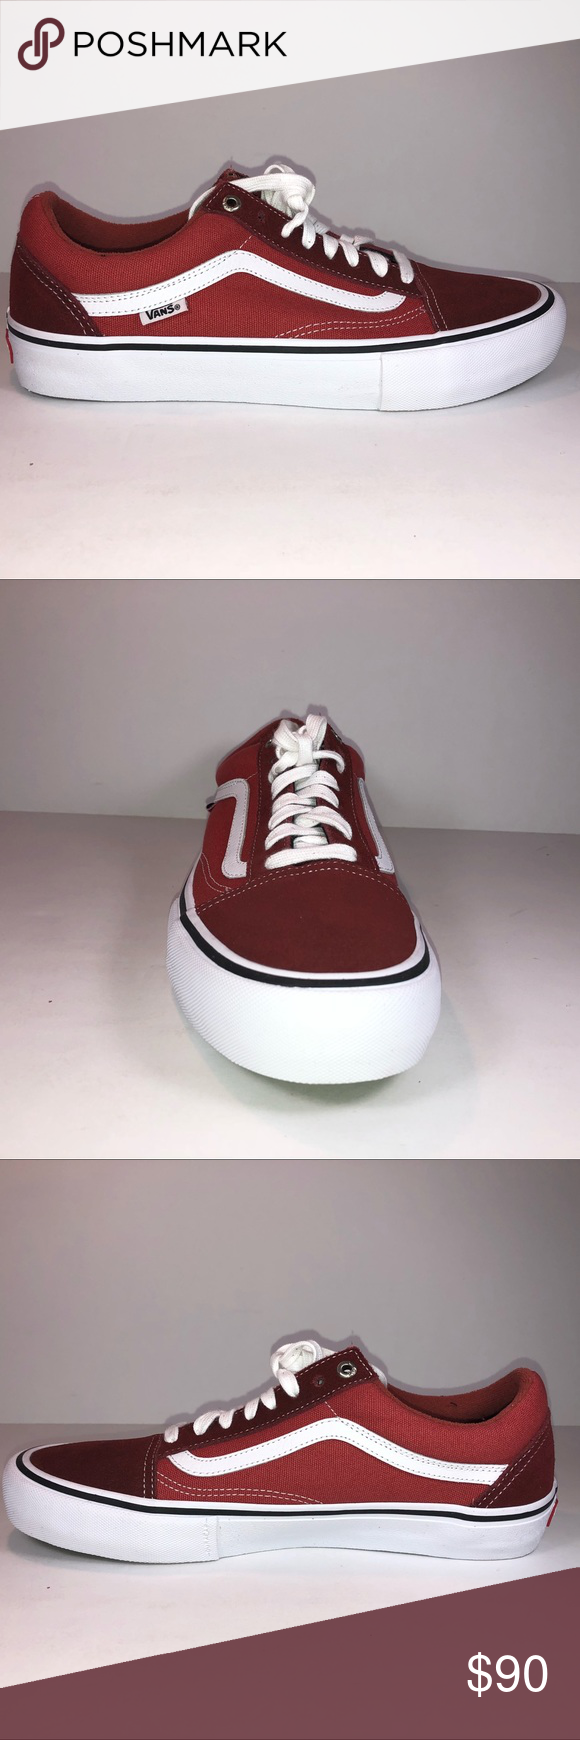 65fe6cb58e0 Vans Old Skool Pro Two Tone Madder Brown Sneakers New With Damaged Box See  Pictures For